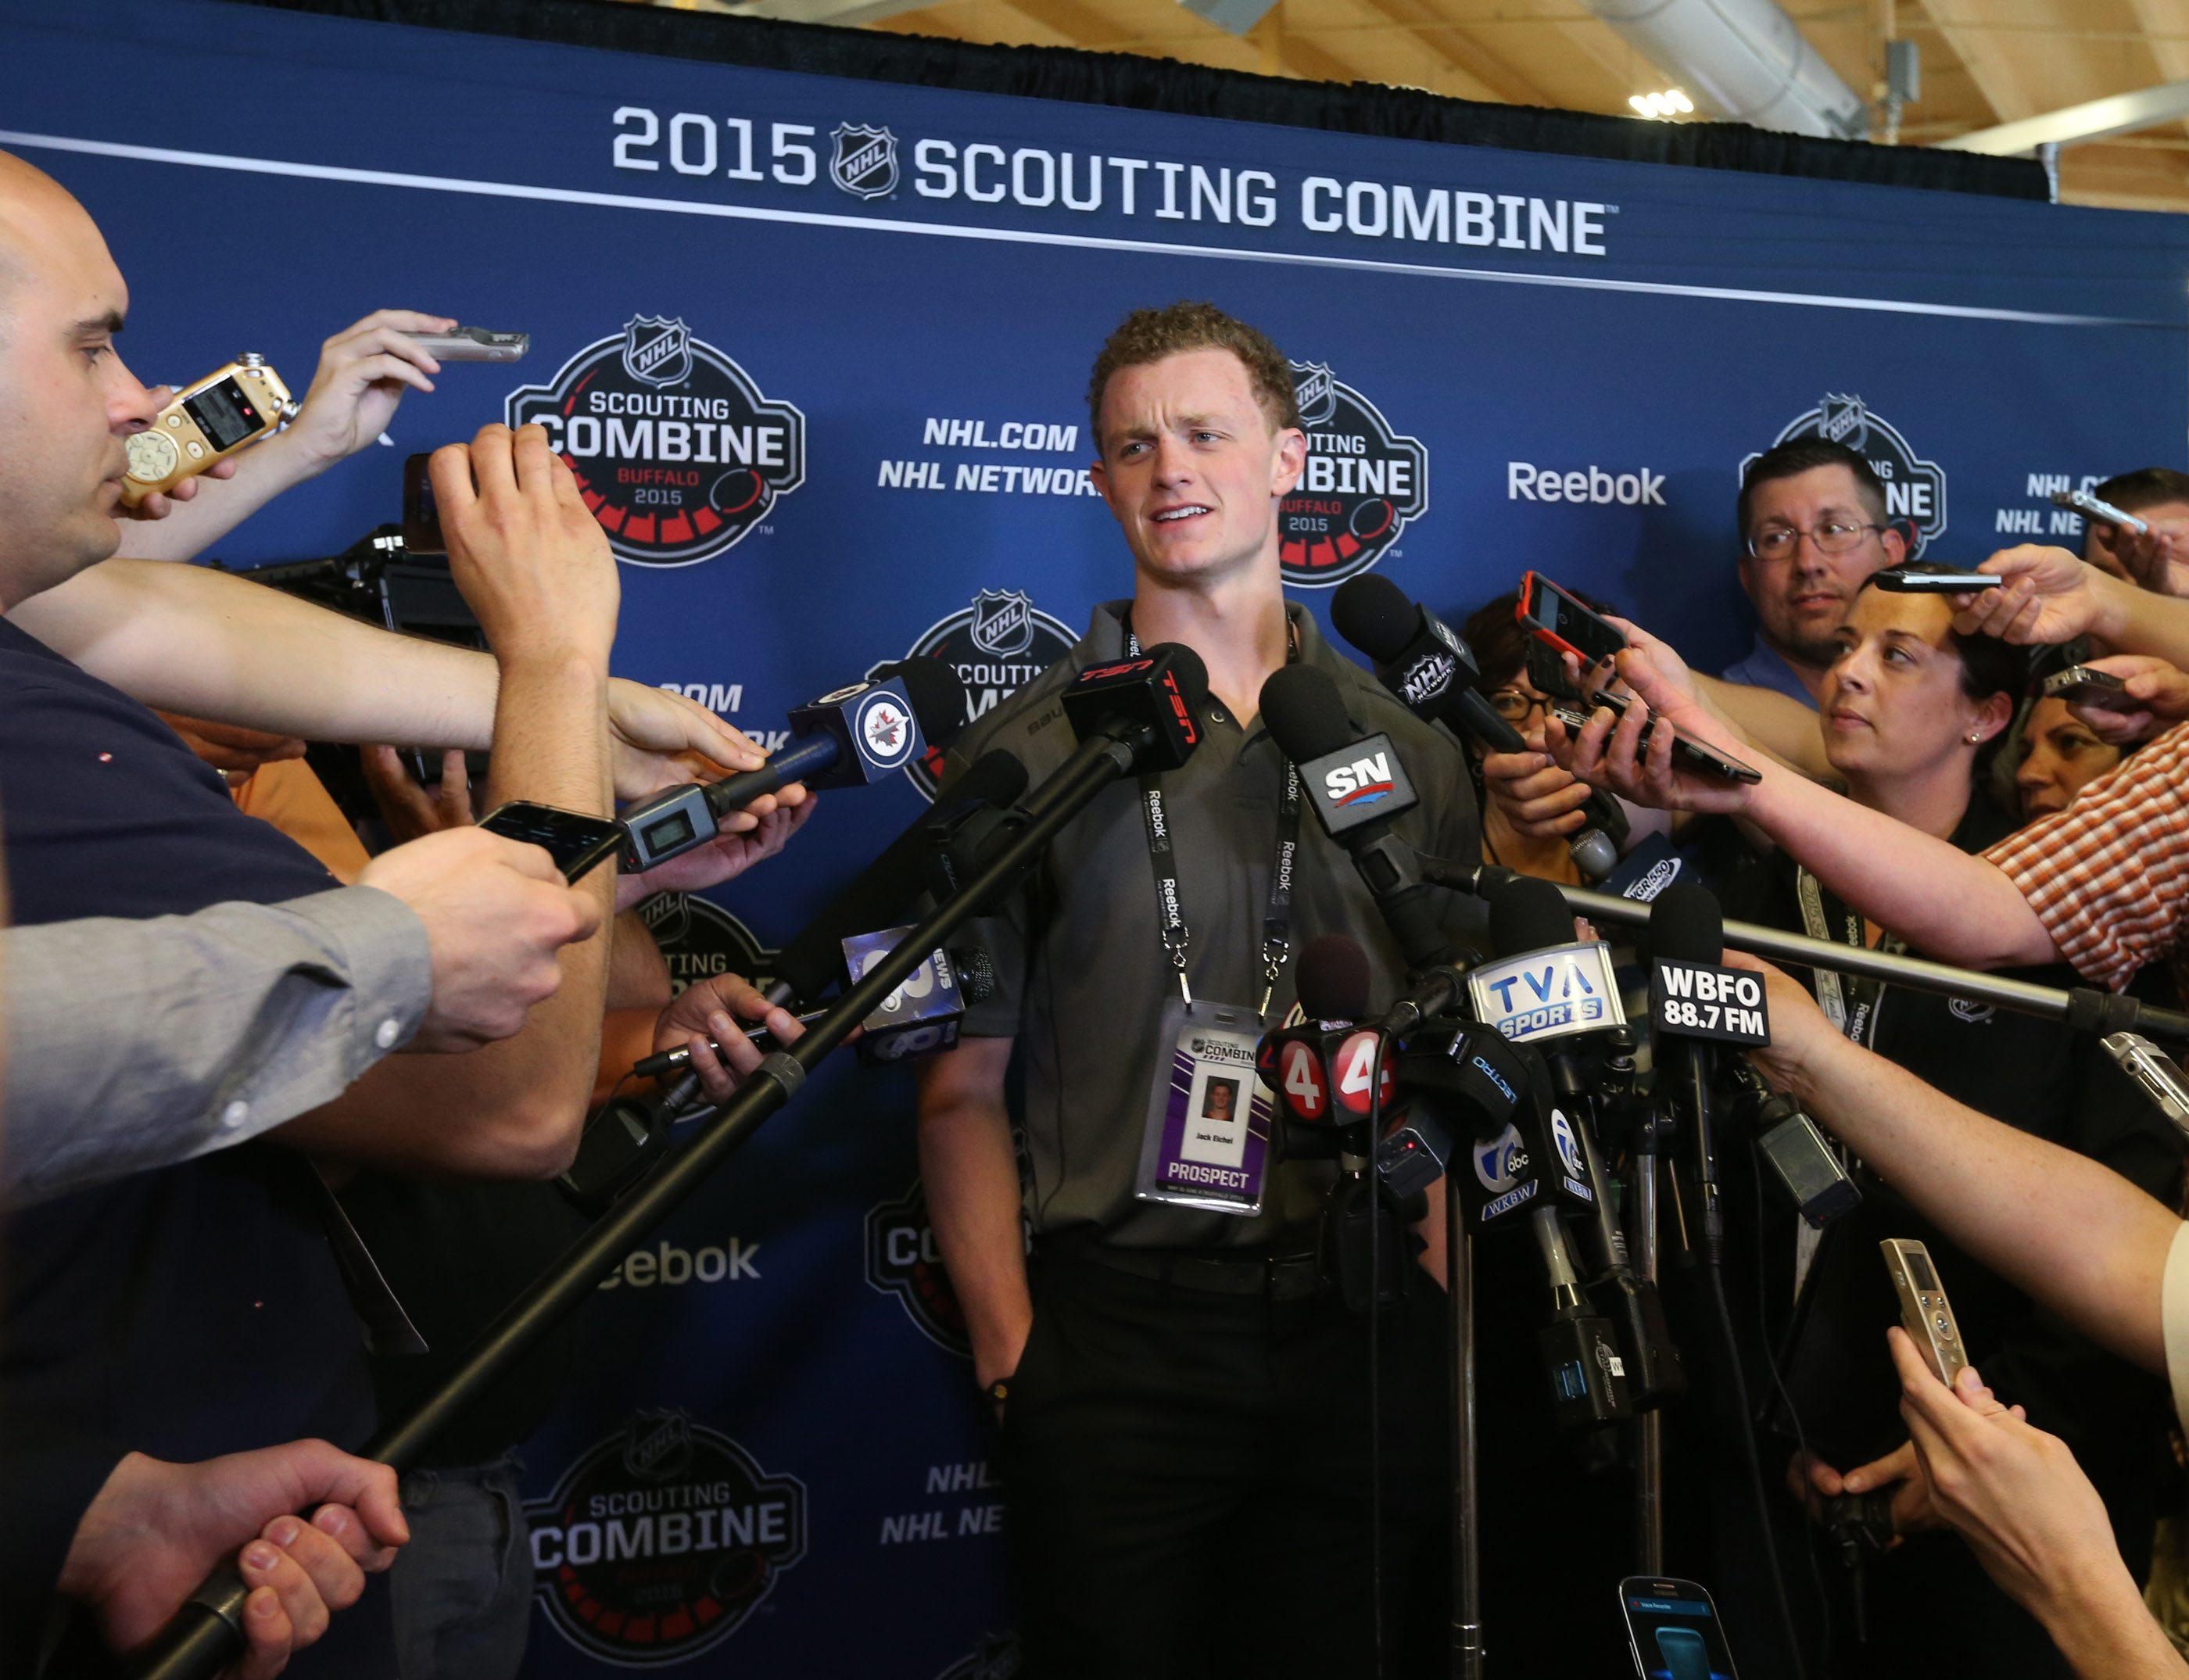 Jack Eichel, the likely pick for the Sabres in the NHL Draft, meets with the media during the Combine.